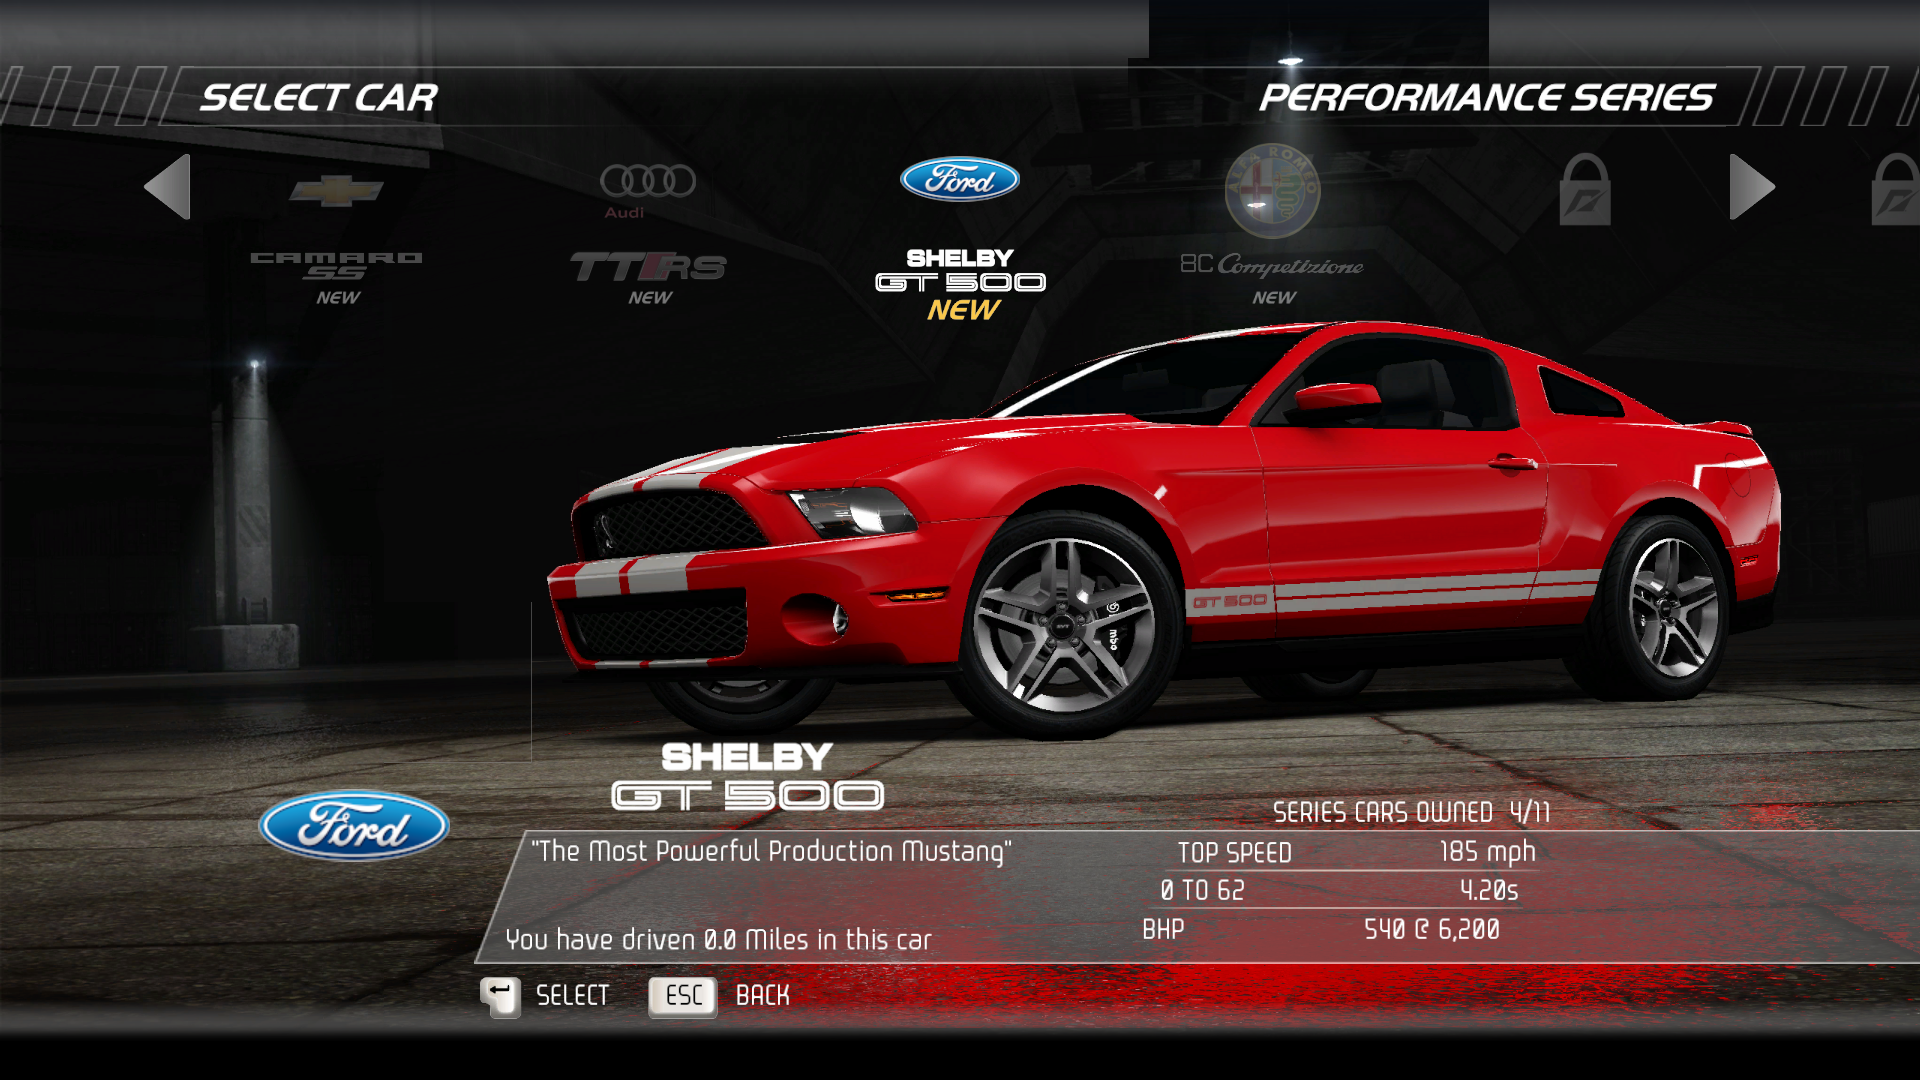 Need for Speed: Hot Pursuit (Limited Edition) Screenshots for Windows - MobyGames